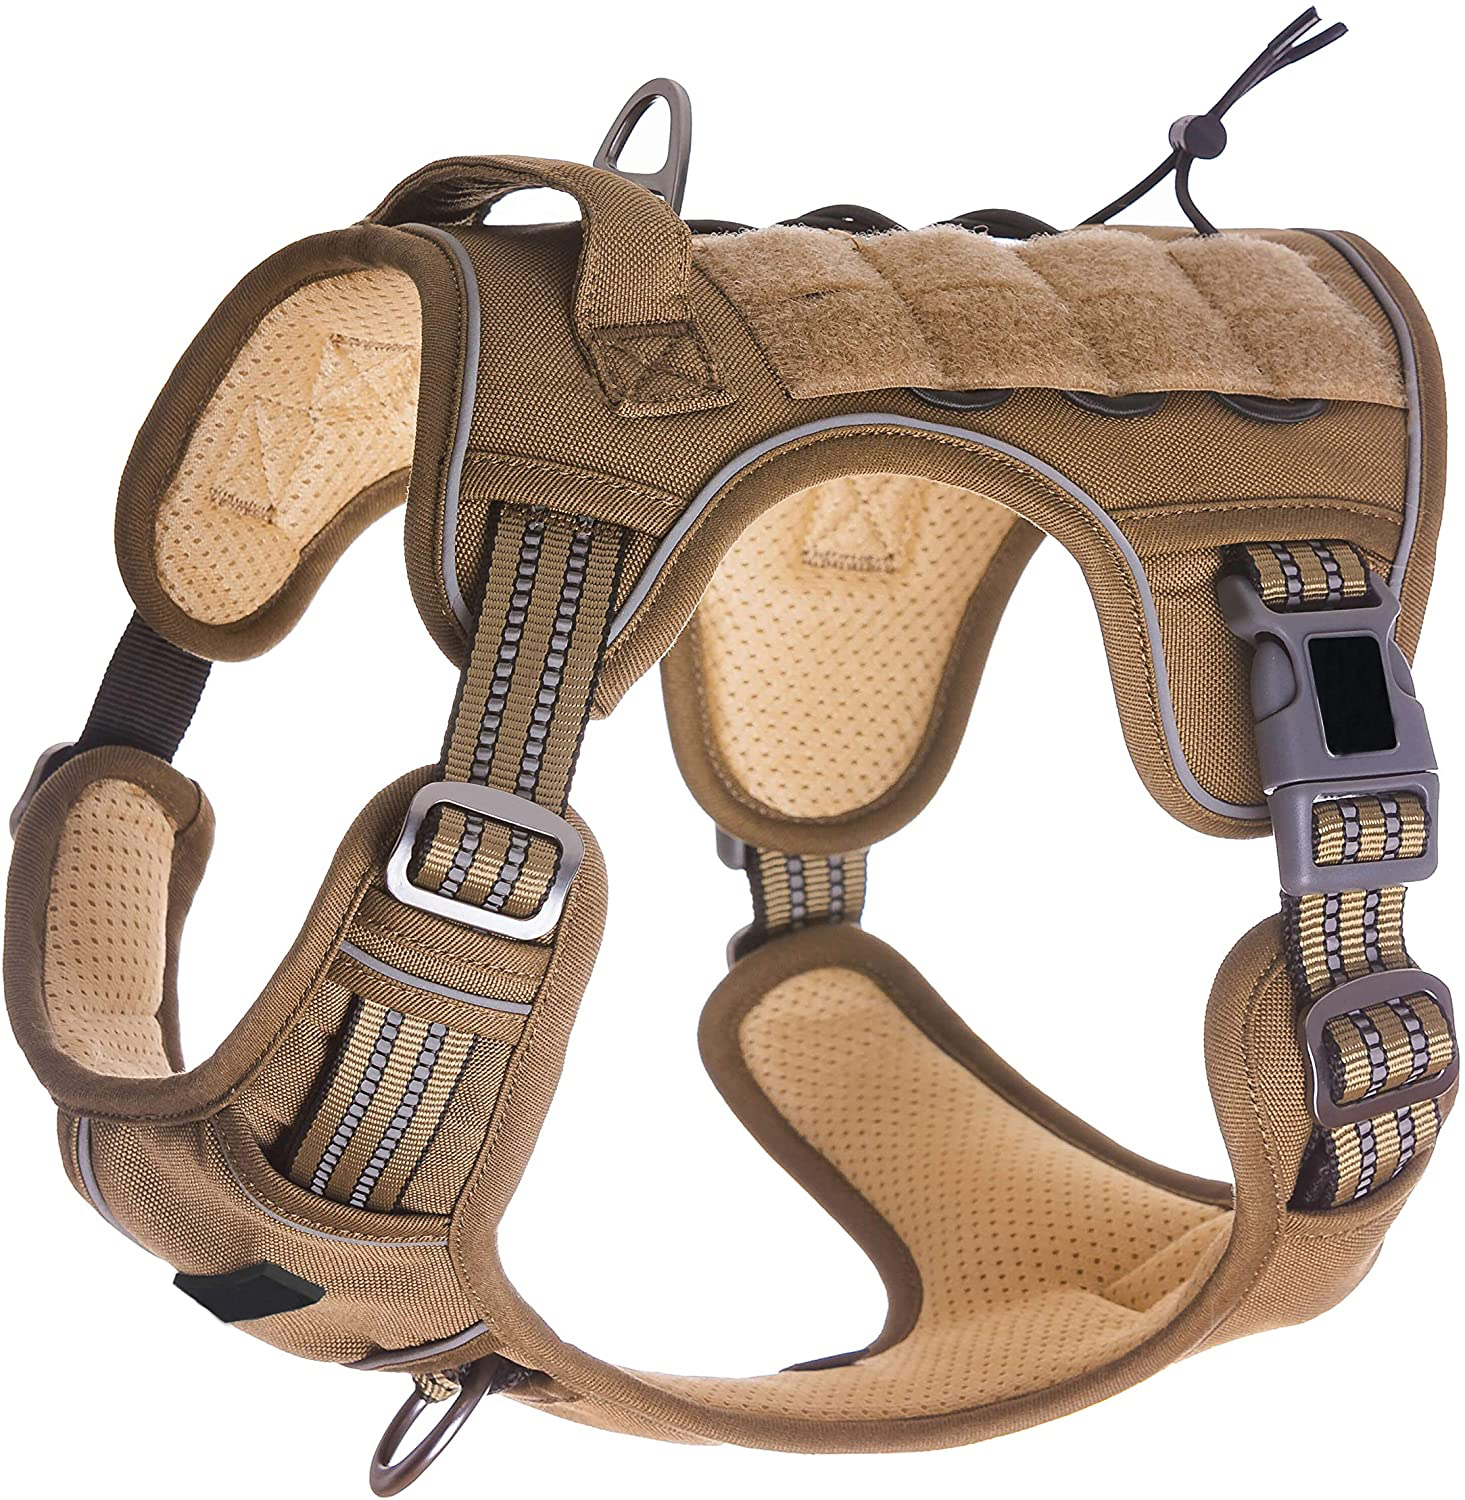 Tactical Dog Training Harness No Pulling Front Clip Leash Reflective  Pet Working Vest Easy Control Large dog harness